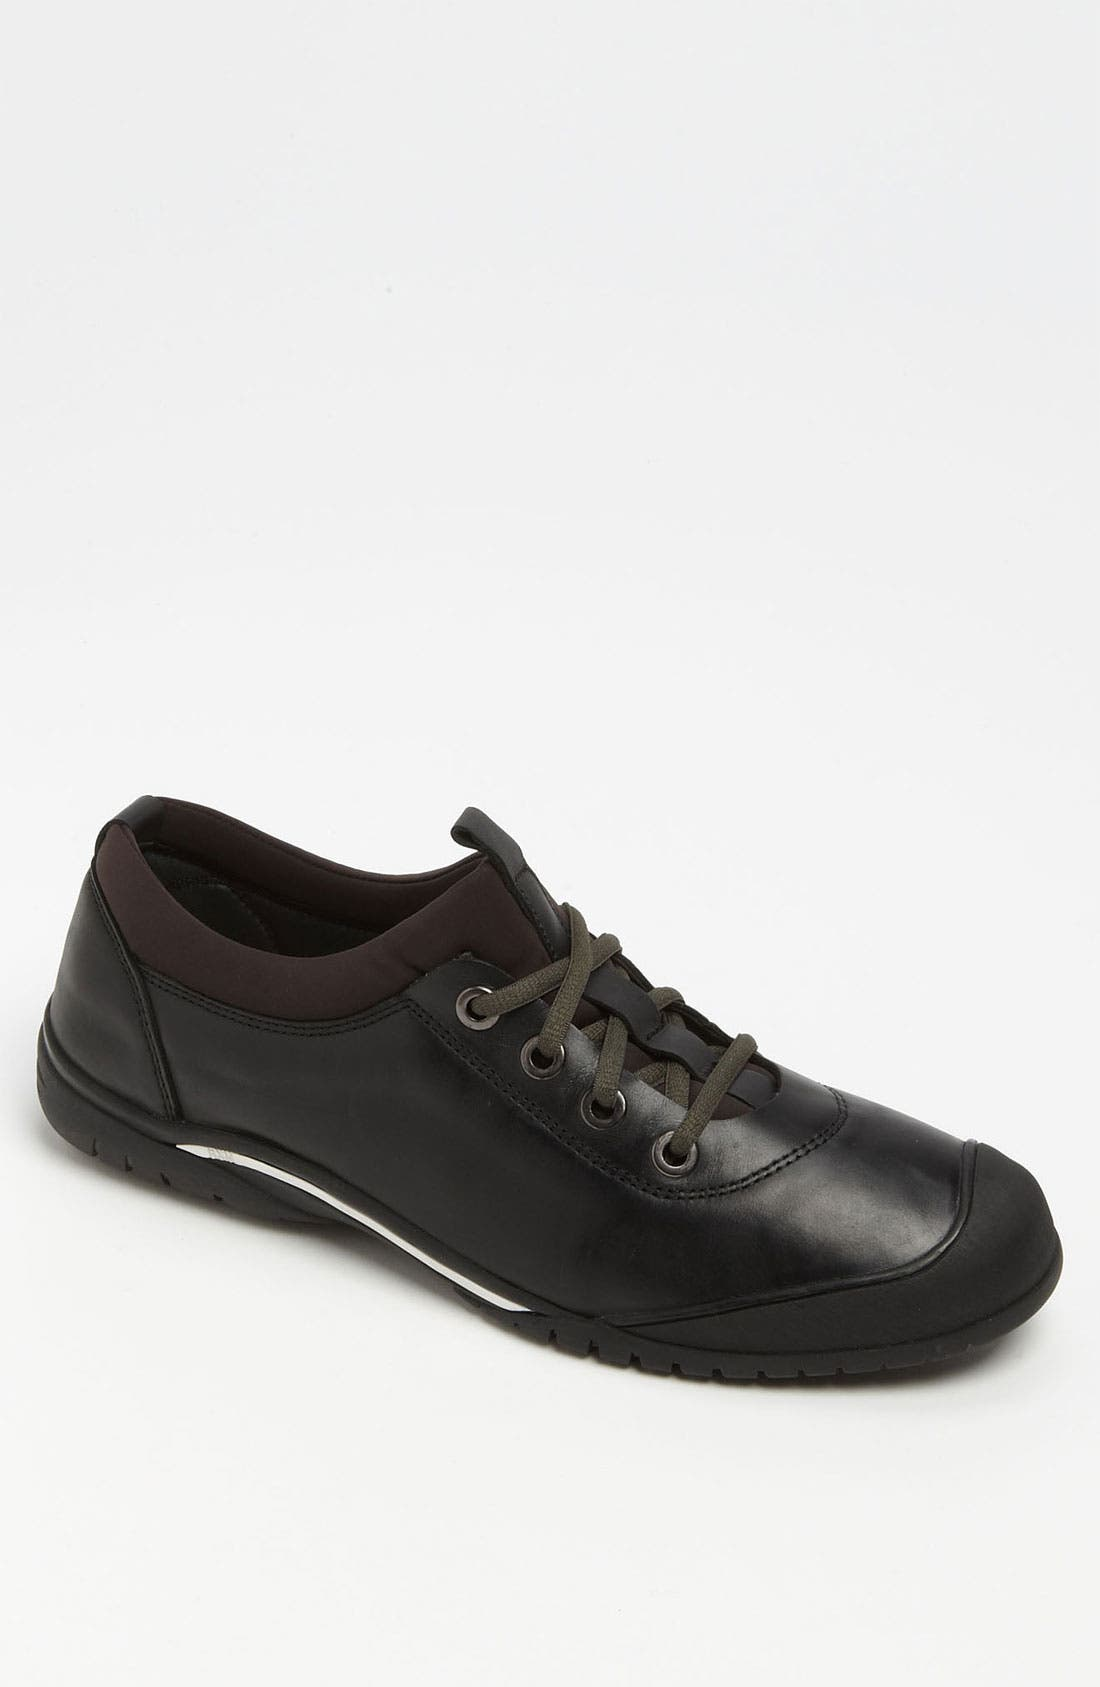 Main Image - Kenneth Cole Reaction 'Pilot Light' Sneaker